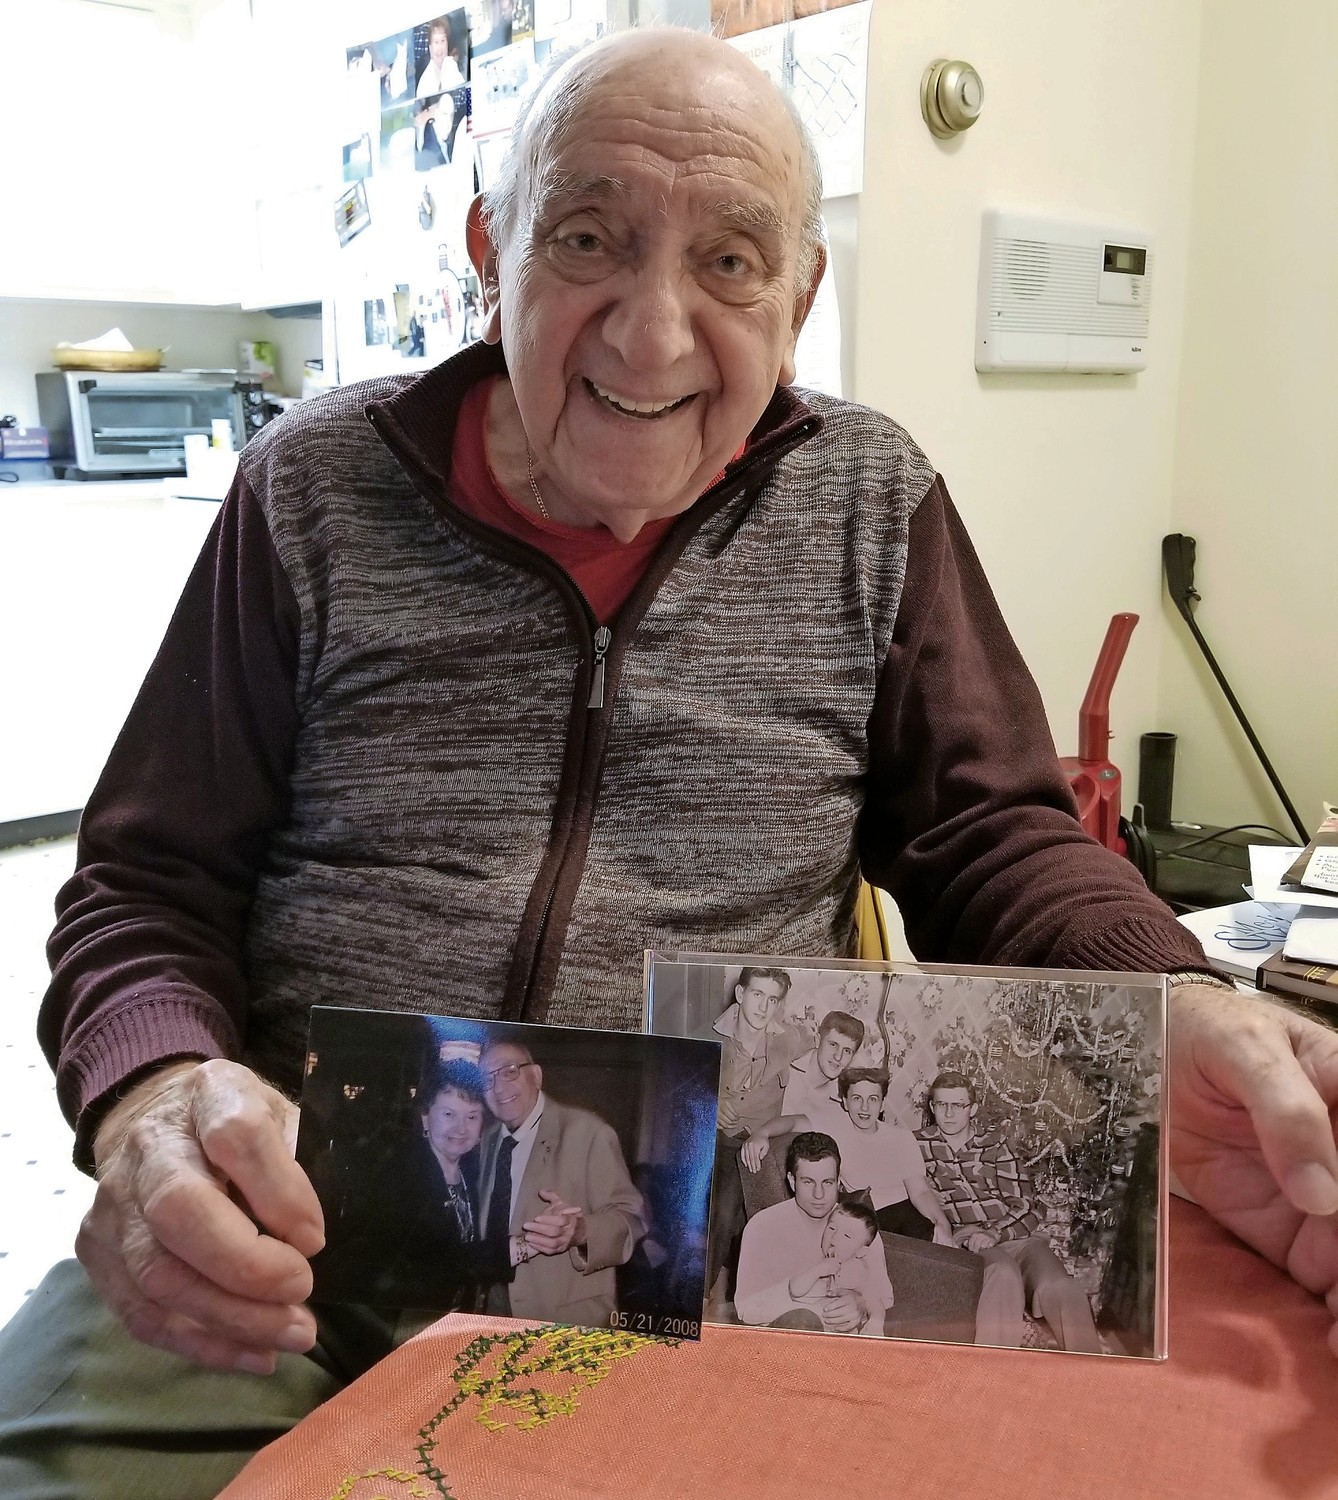 Charlie Franza, 94, reminisced about two women who captured his heart: his first love, Mary, and his wife, Nettie.